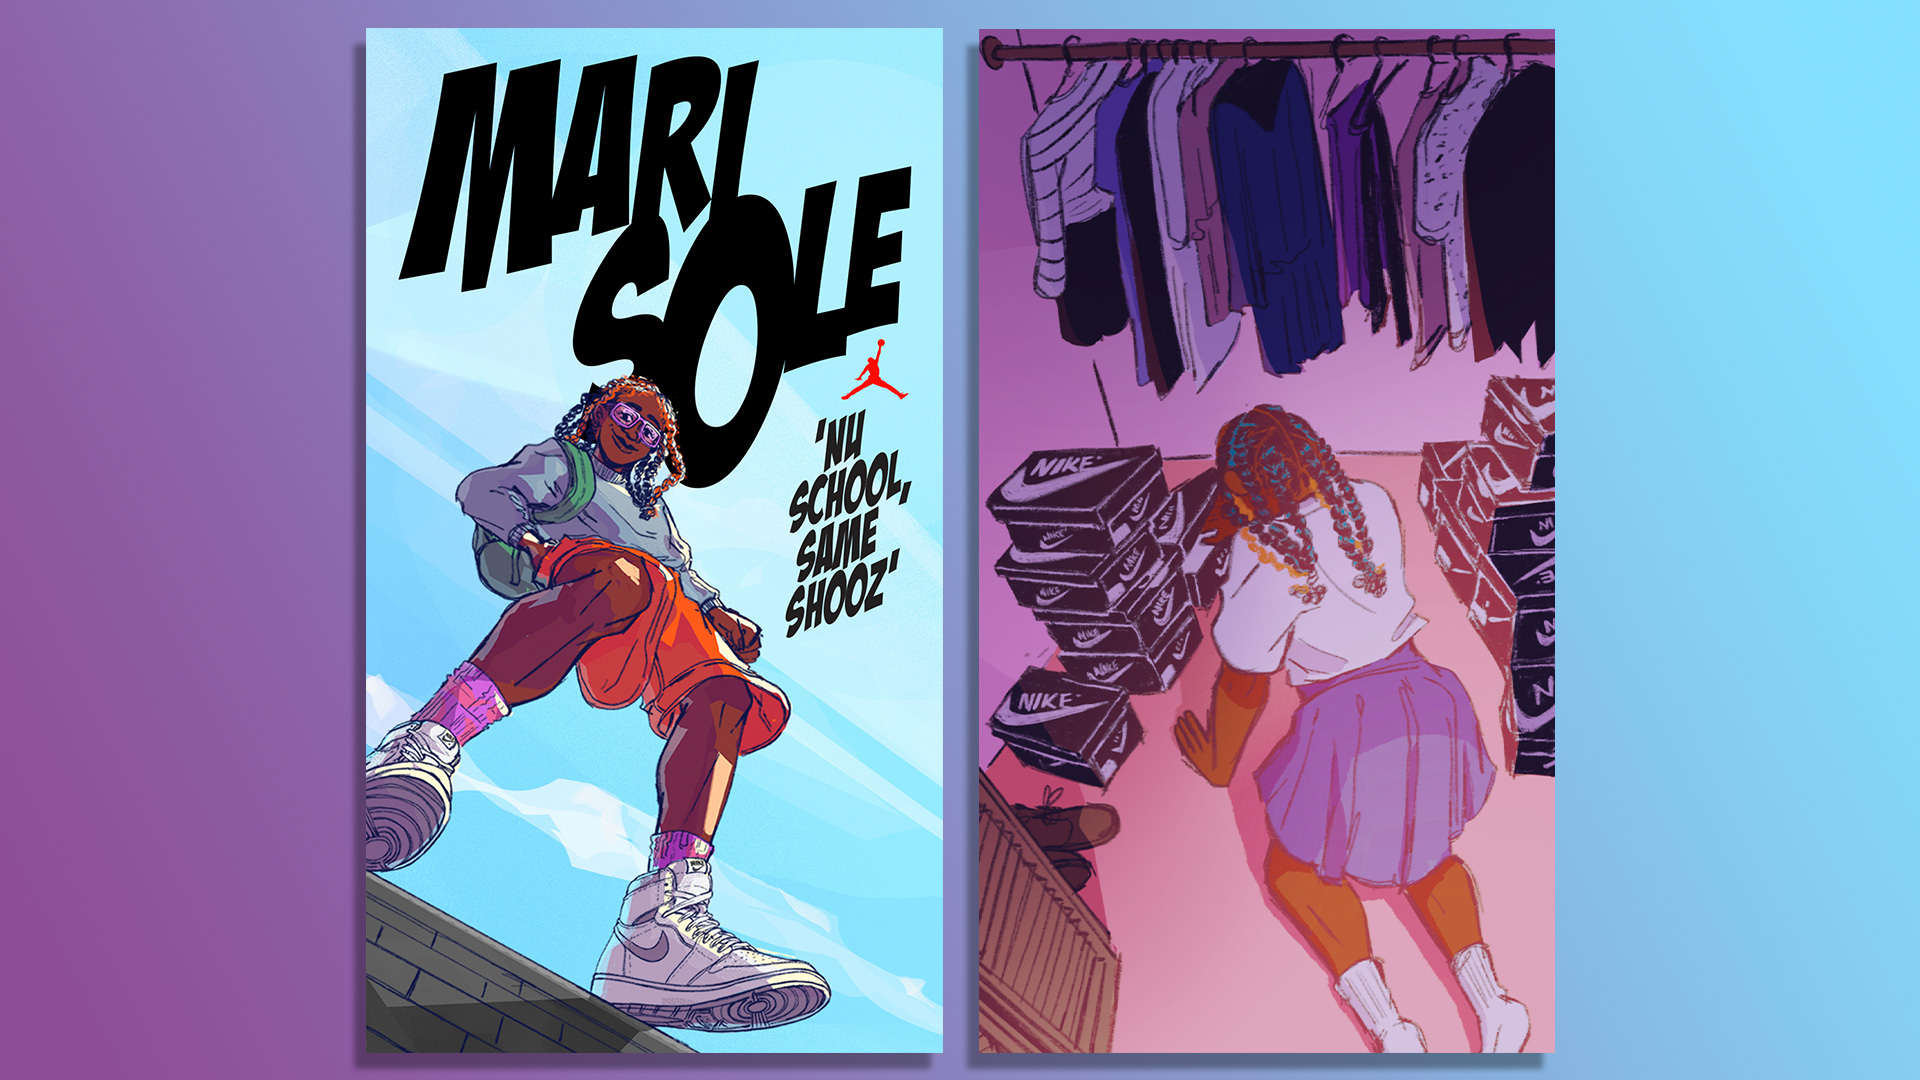 Side-by-side image of MariSole comic cover and an animated girl searching her closet full of Air Jordan sneakers